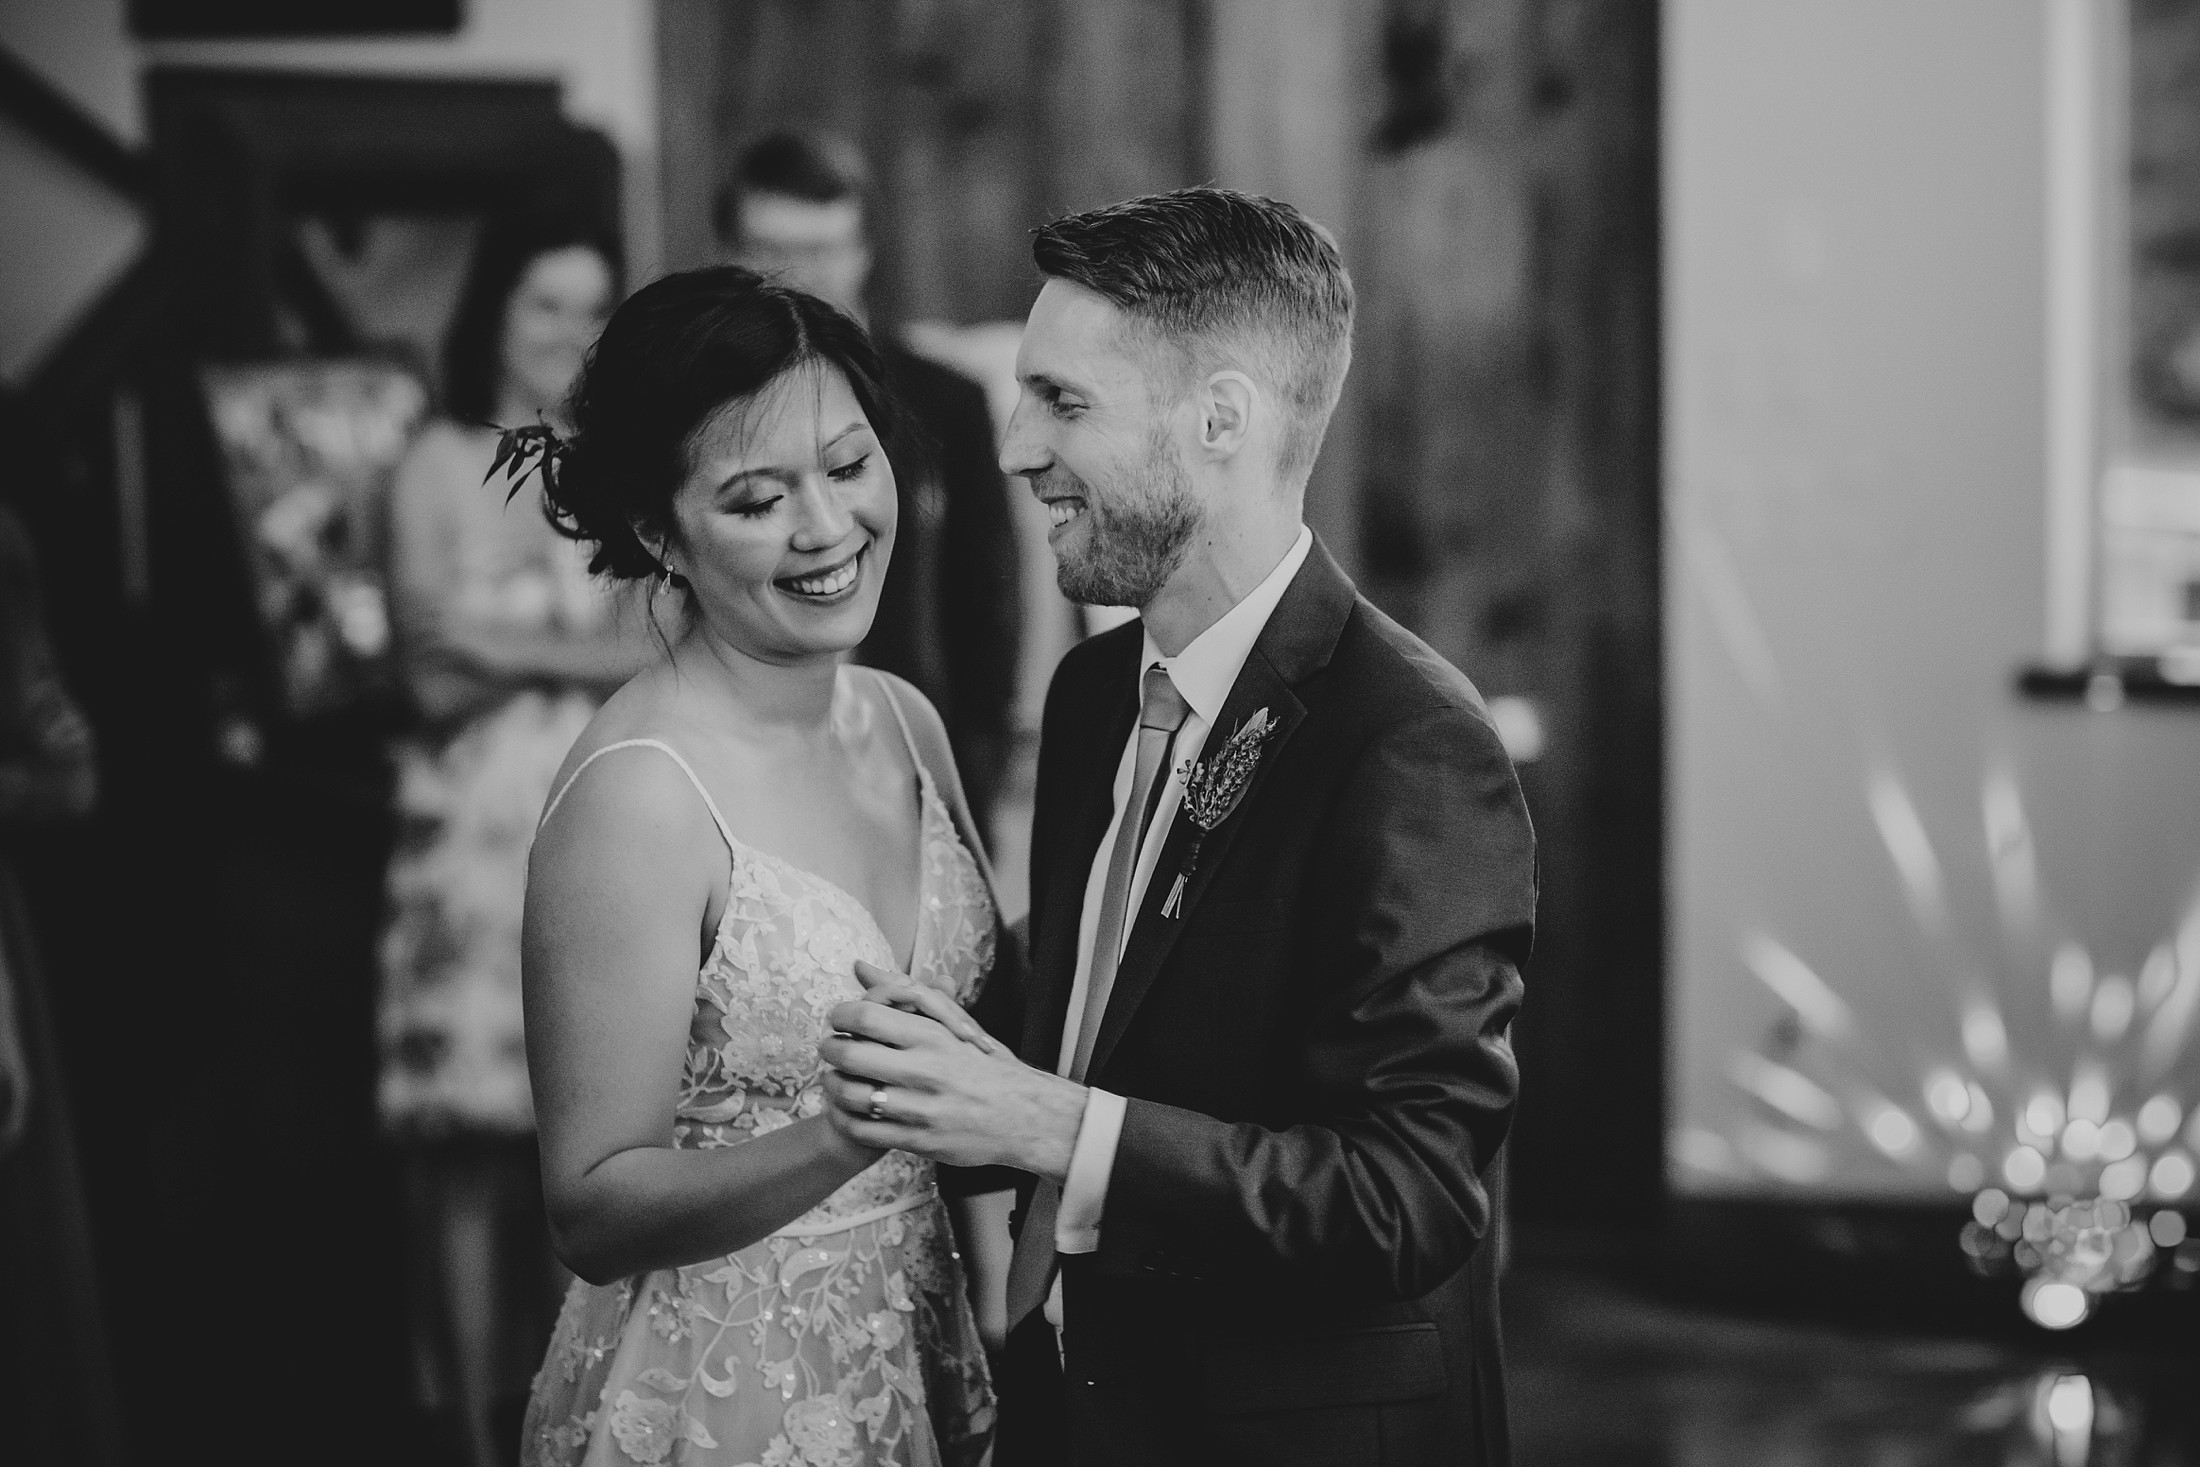 May26.TiffanyandSpencer4750_Sea Cider Farm and Ciderhouse Wedding Documentary Wedding Photography Award Winning Photojournalist Vancouver Island Photographers Victoria Photographer Note Photography Seacider Wedding Orchard Wedding Photos First Look.jpg